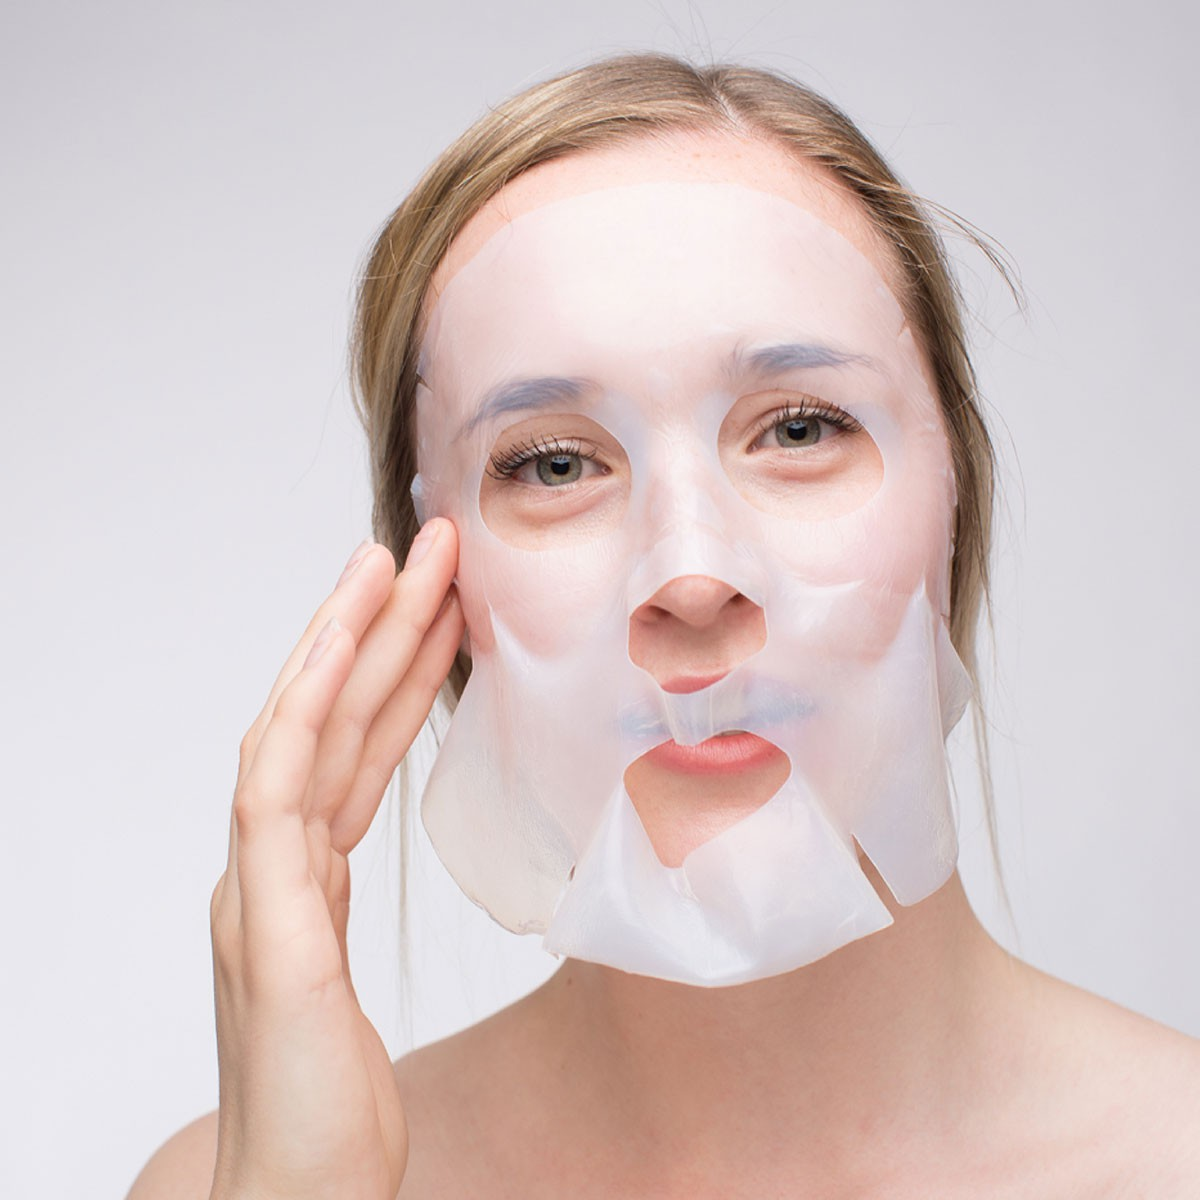 Applying of the Mira-Skin Mask onto the face